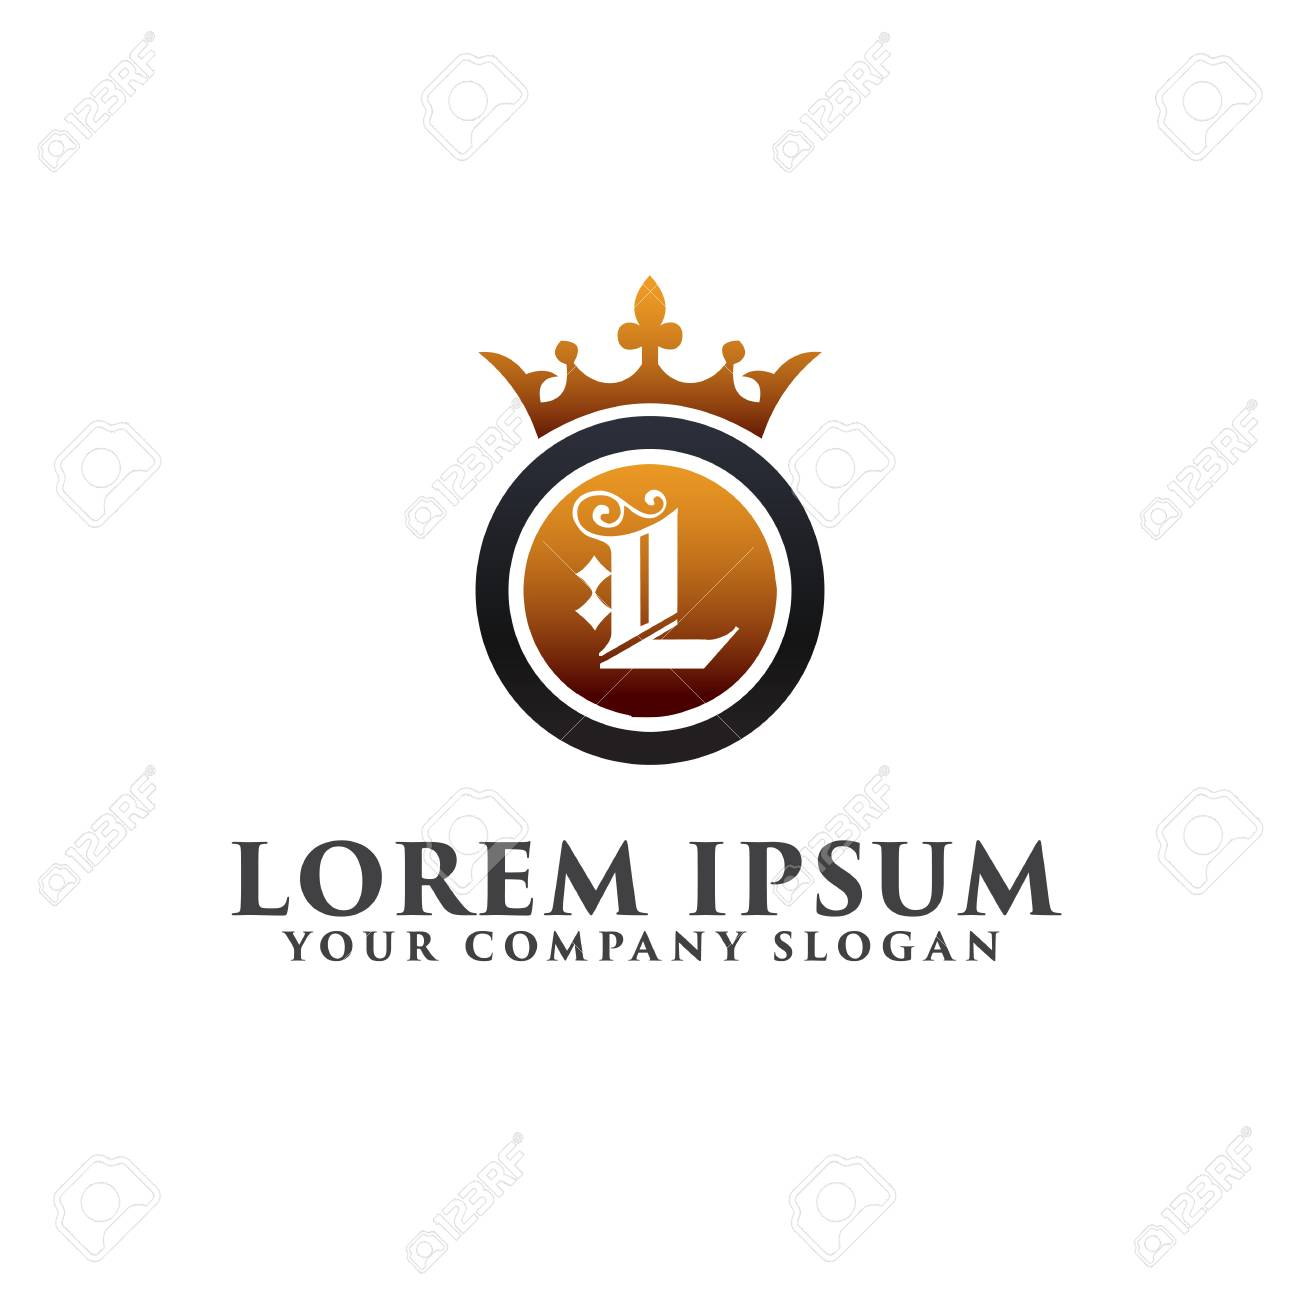 Luxury Letter L With Crown Logo Design Concept Template Royalty Free ...